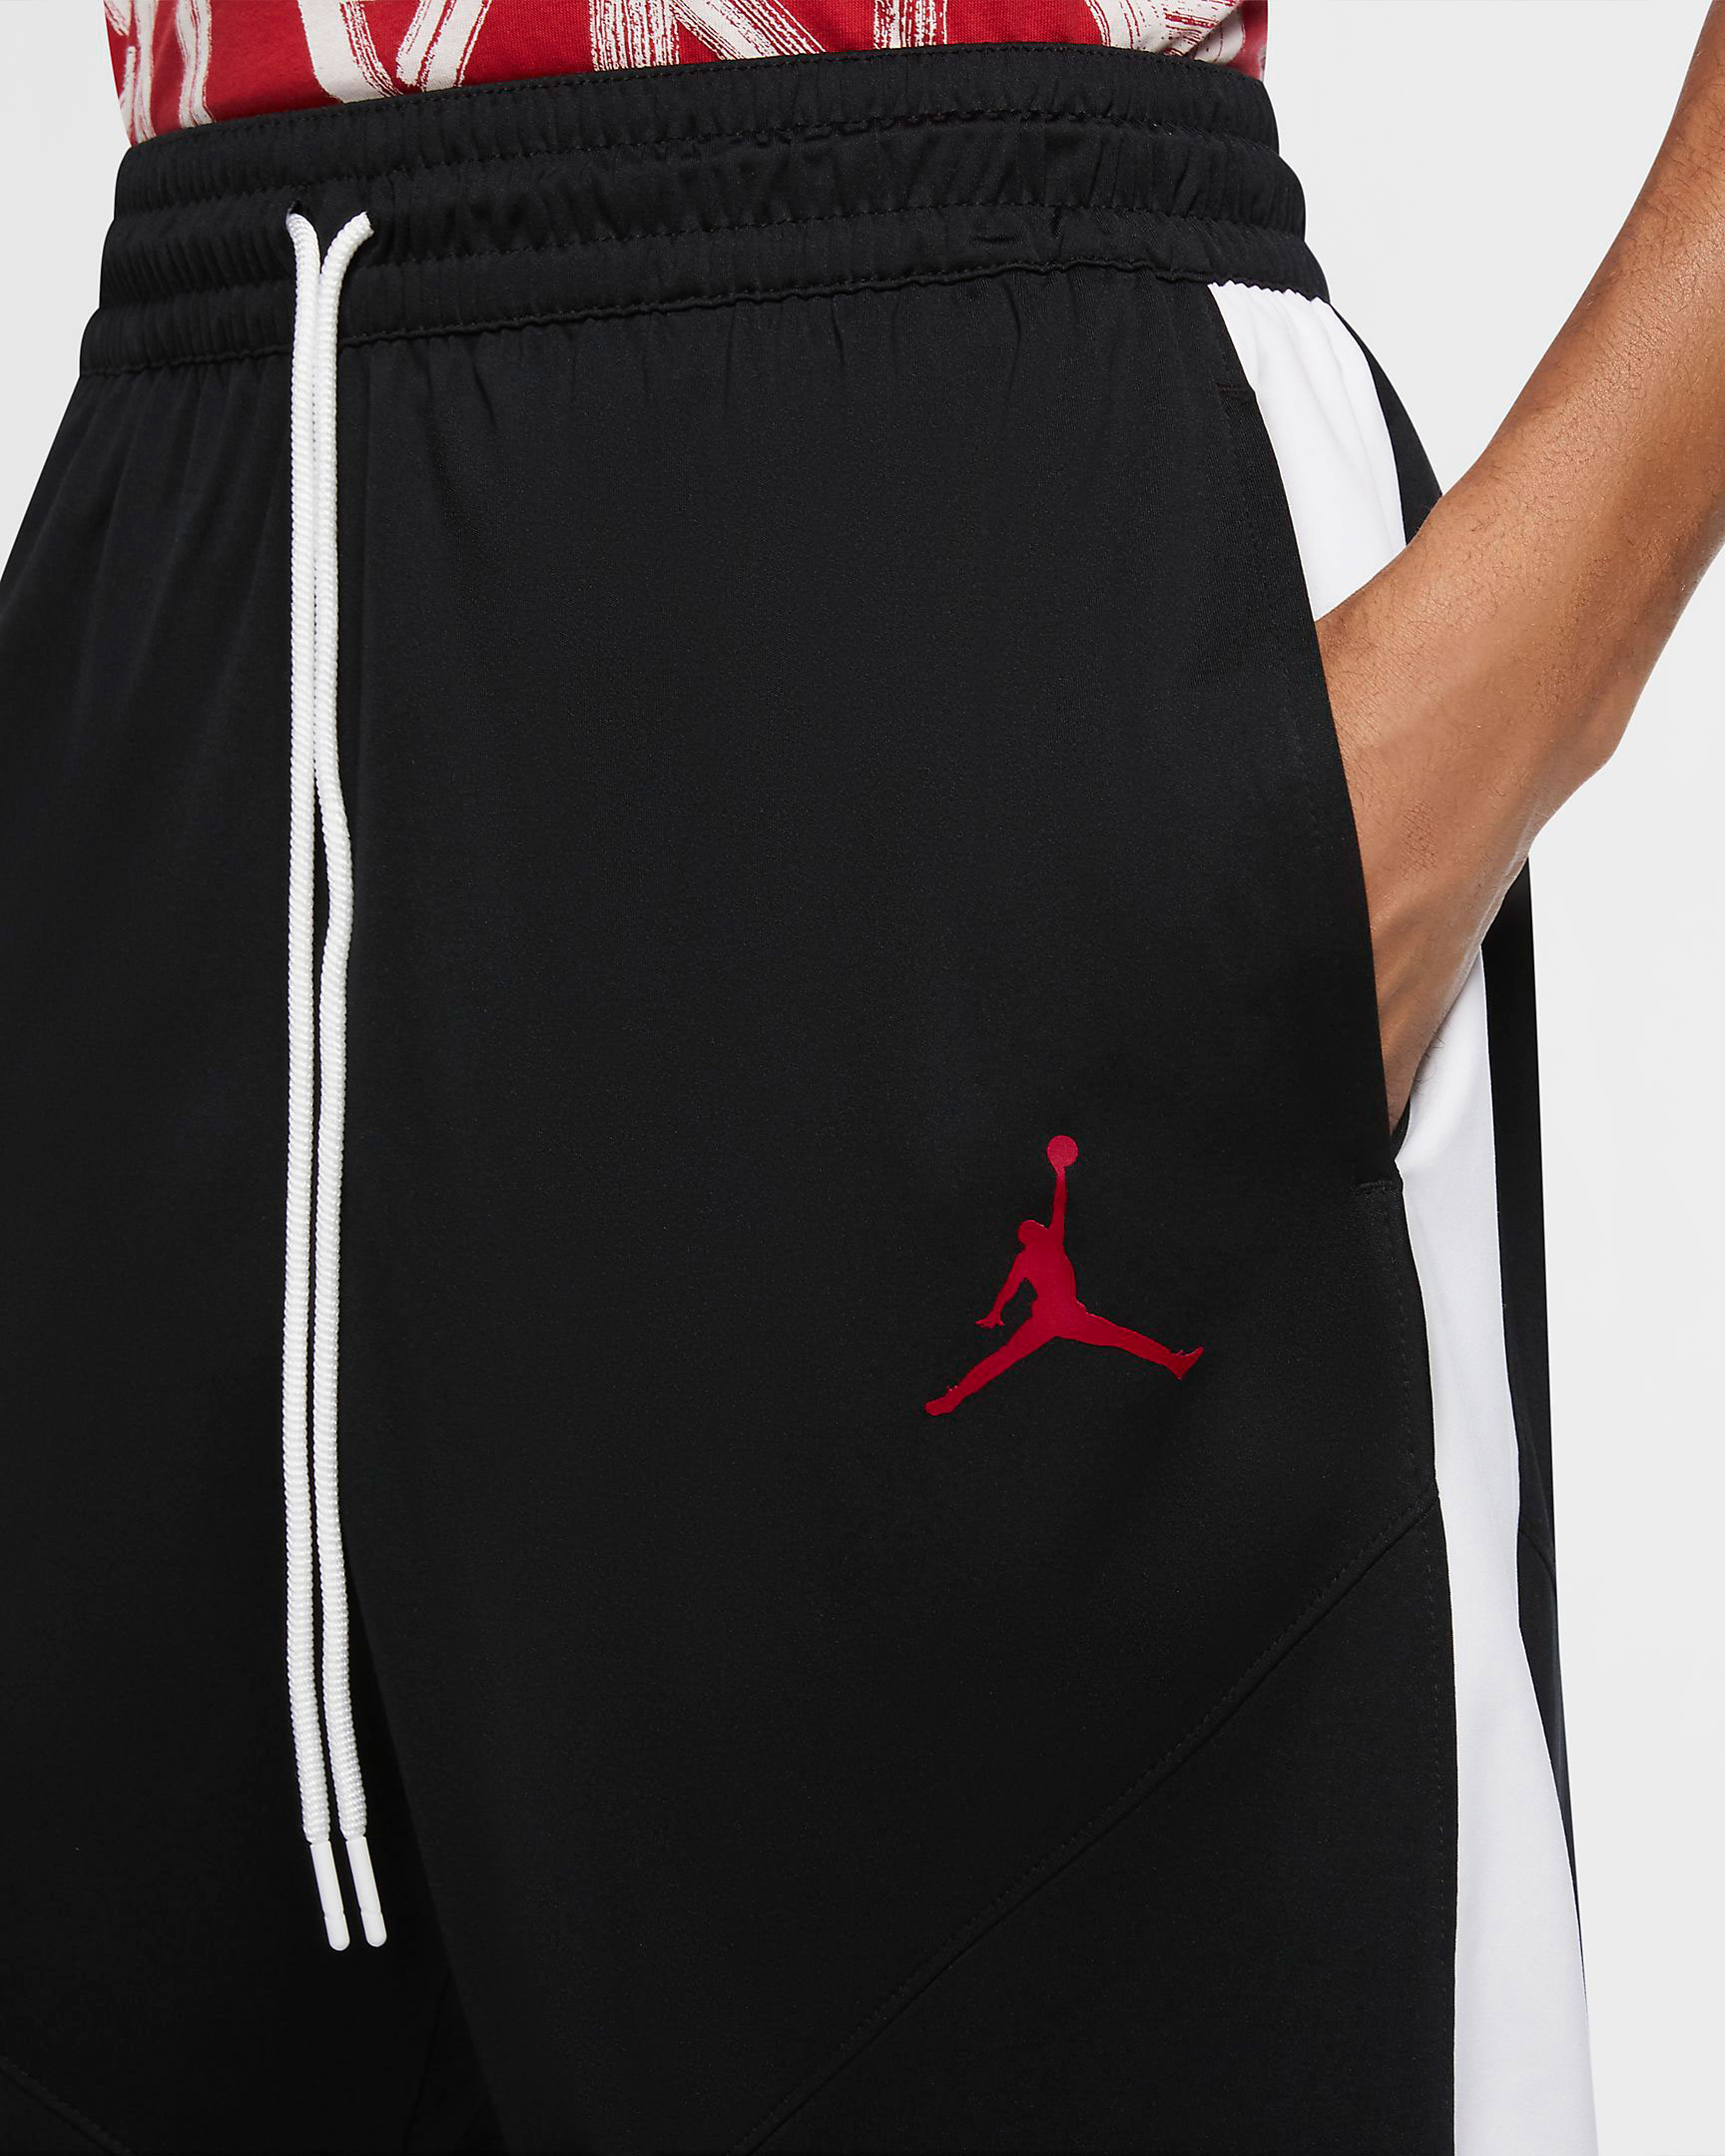 jordan-black-white-gym-red-basketball-shorts-2